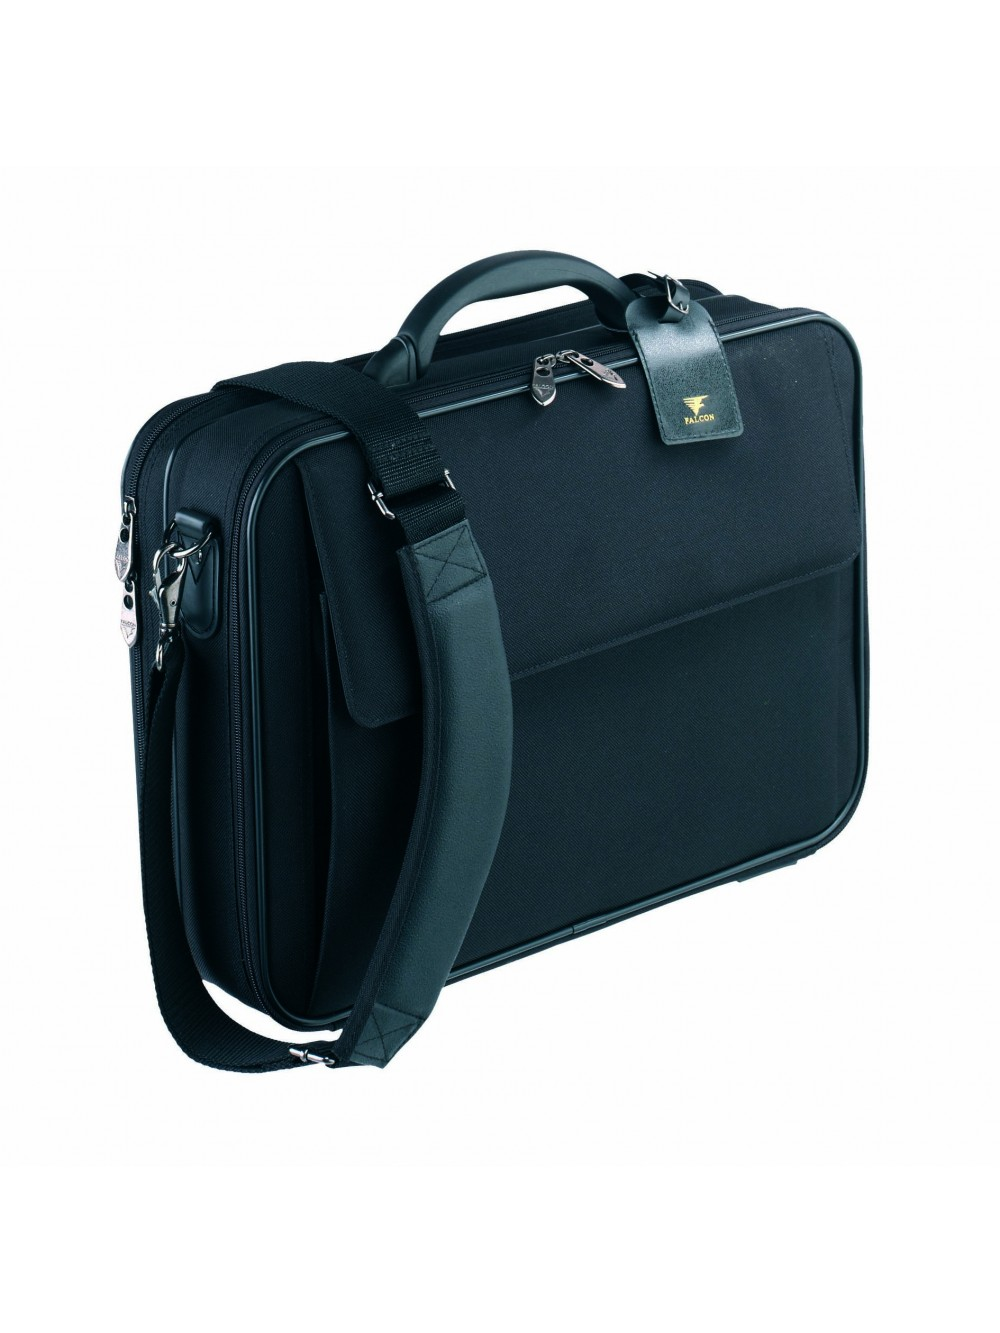 Falcon Bags 16'' Laptop Business Bag Case Black